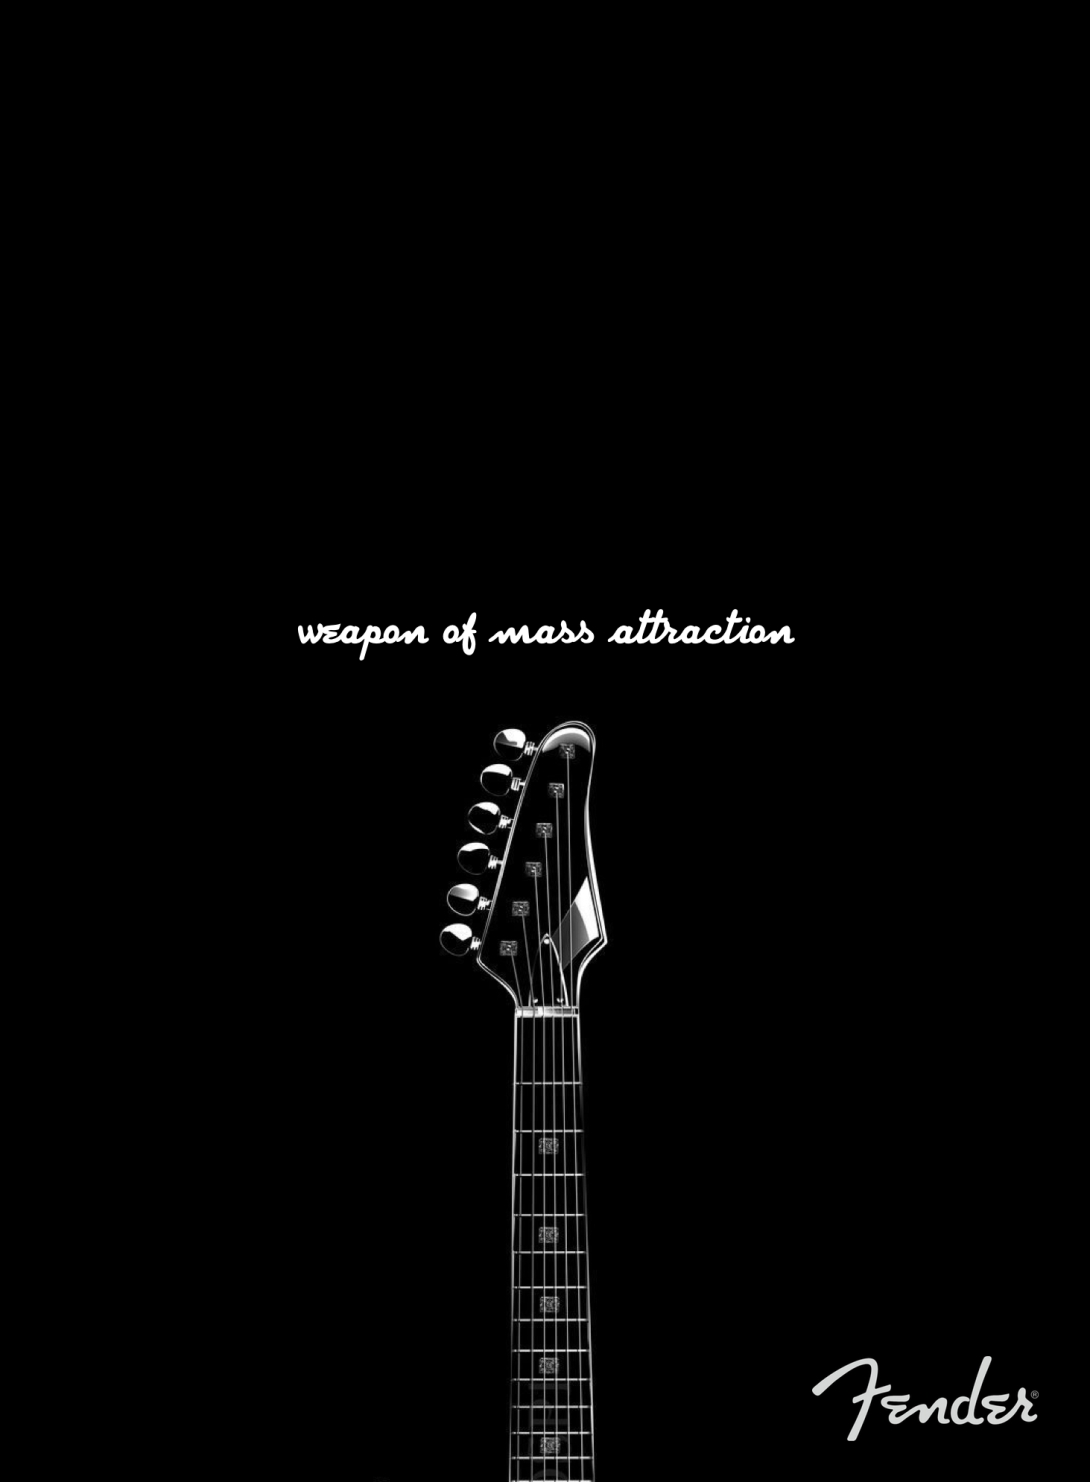 advertising idea for guitar brand - weapon of mass attraction